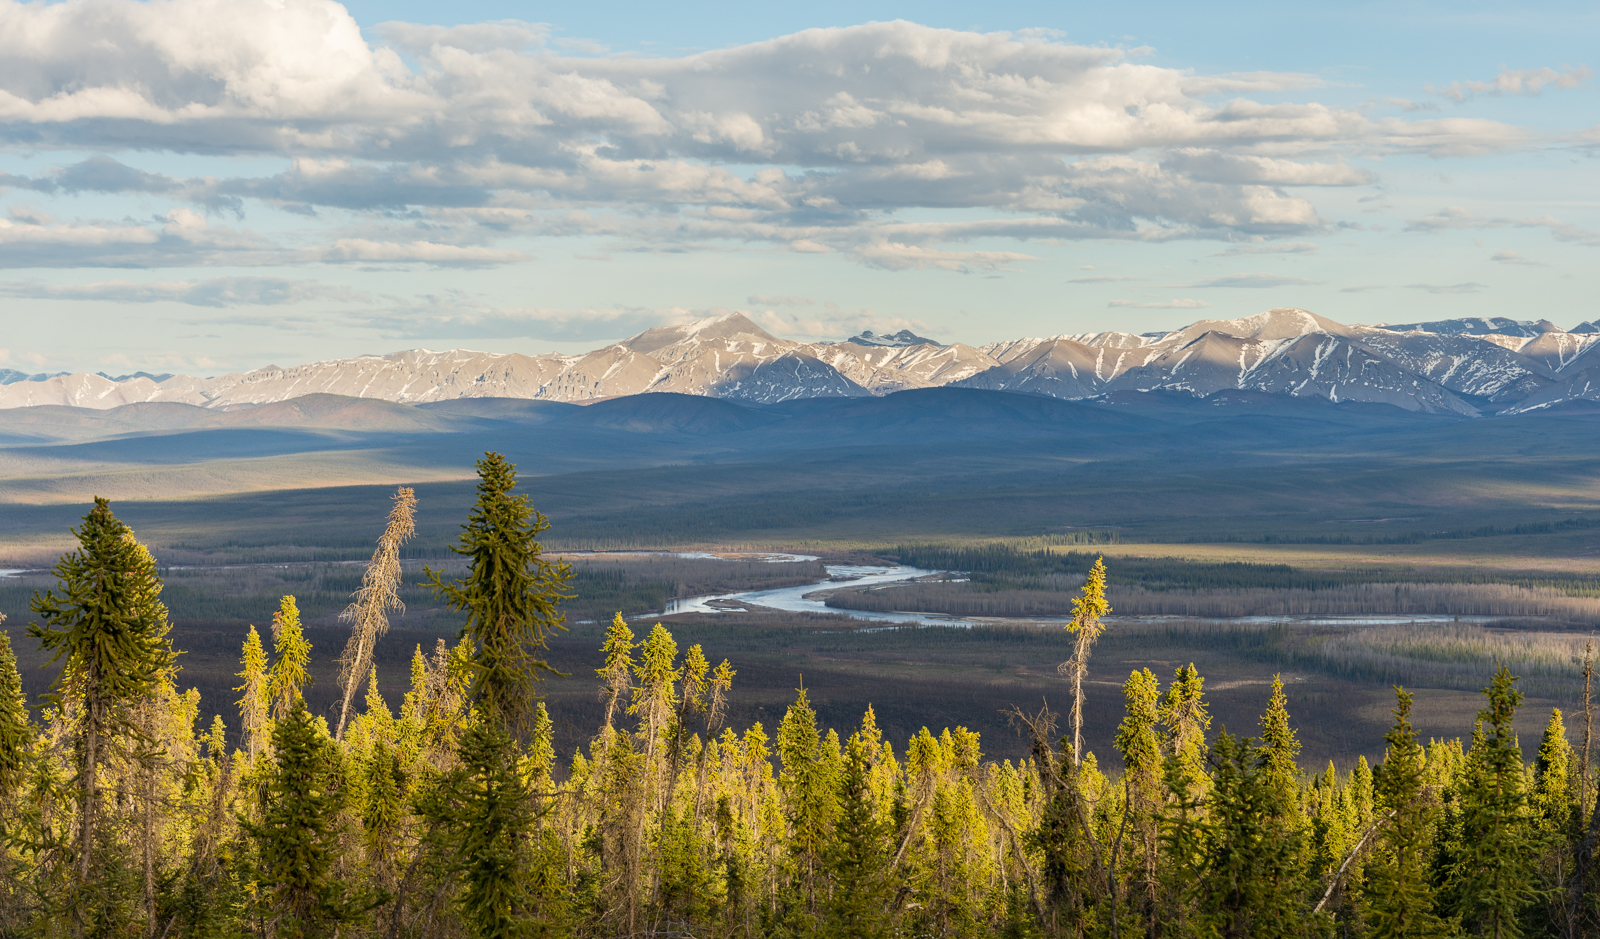 The Dempster Highway's stunning scenery